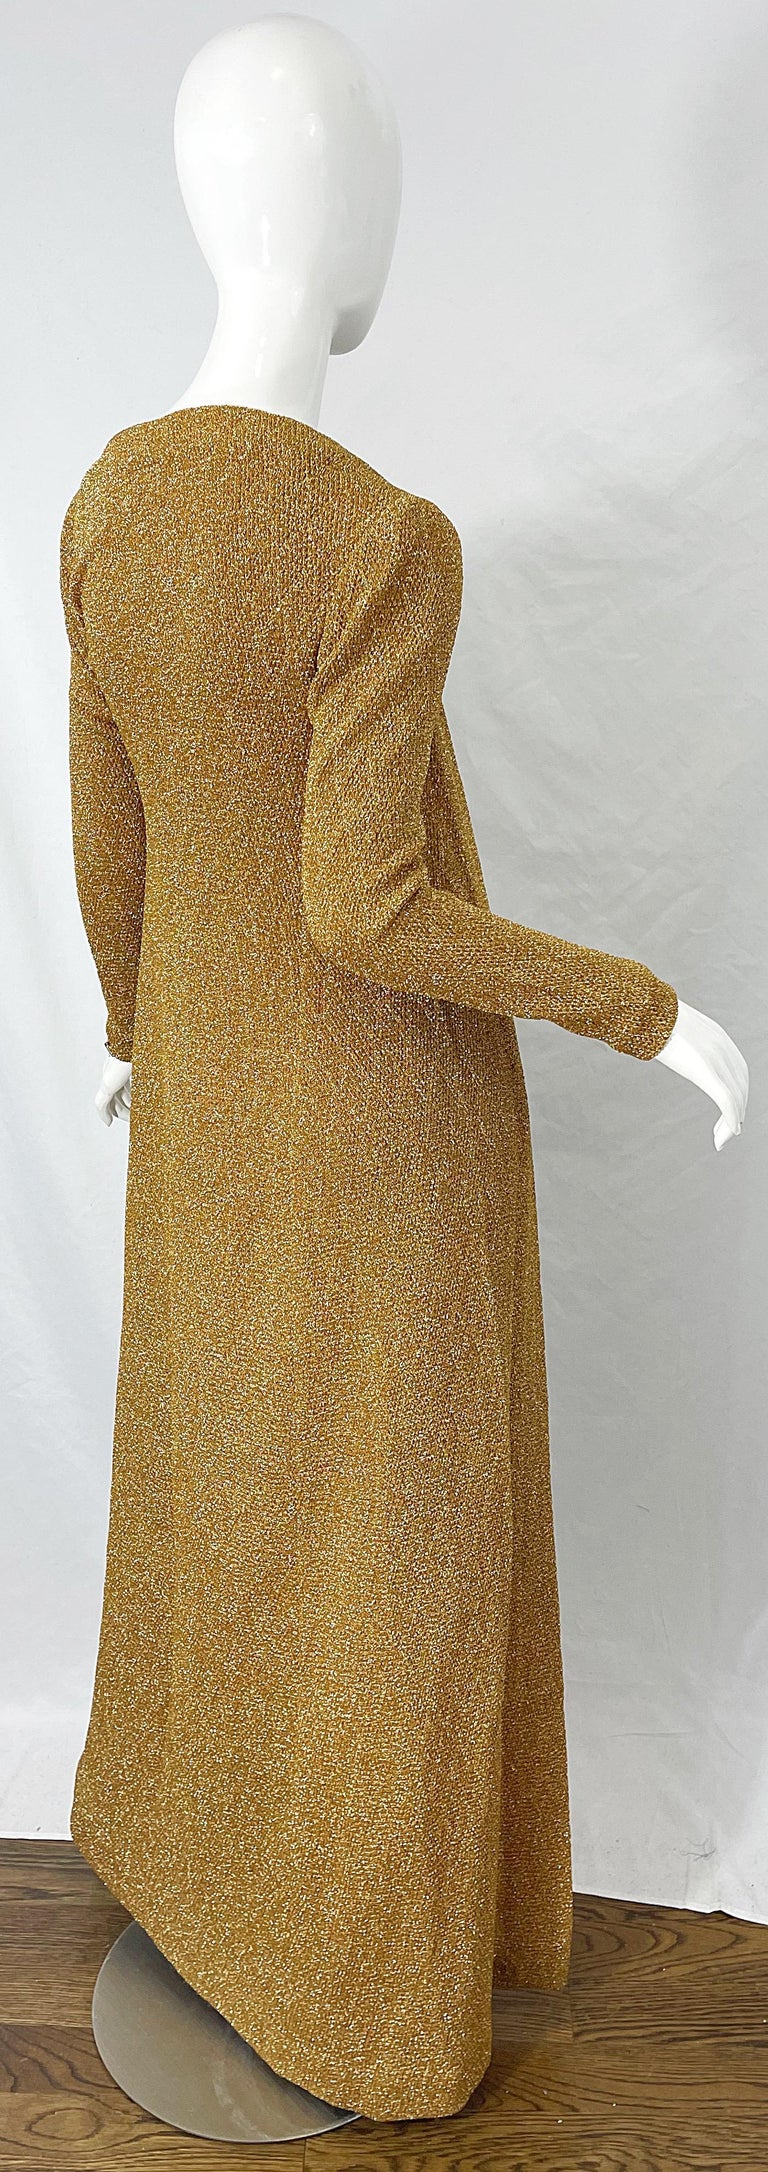 1970s Halston NWT Gold + Silver 70s Vintage Lurex Gown + Duster Cardigan For Sale 2